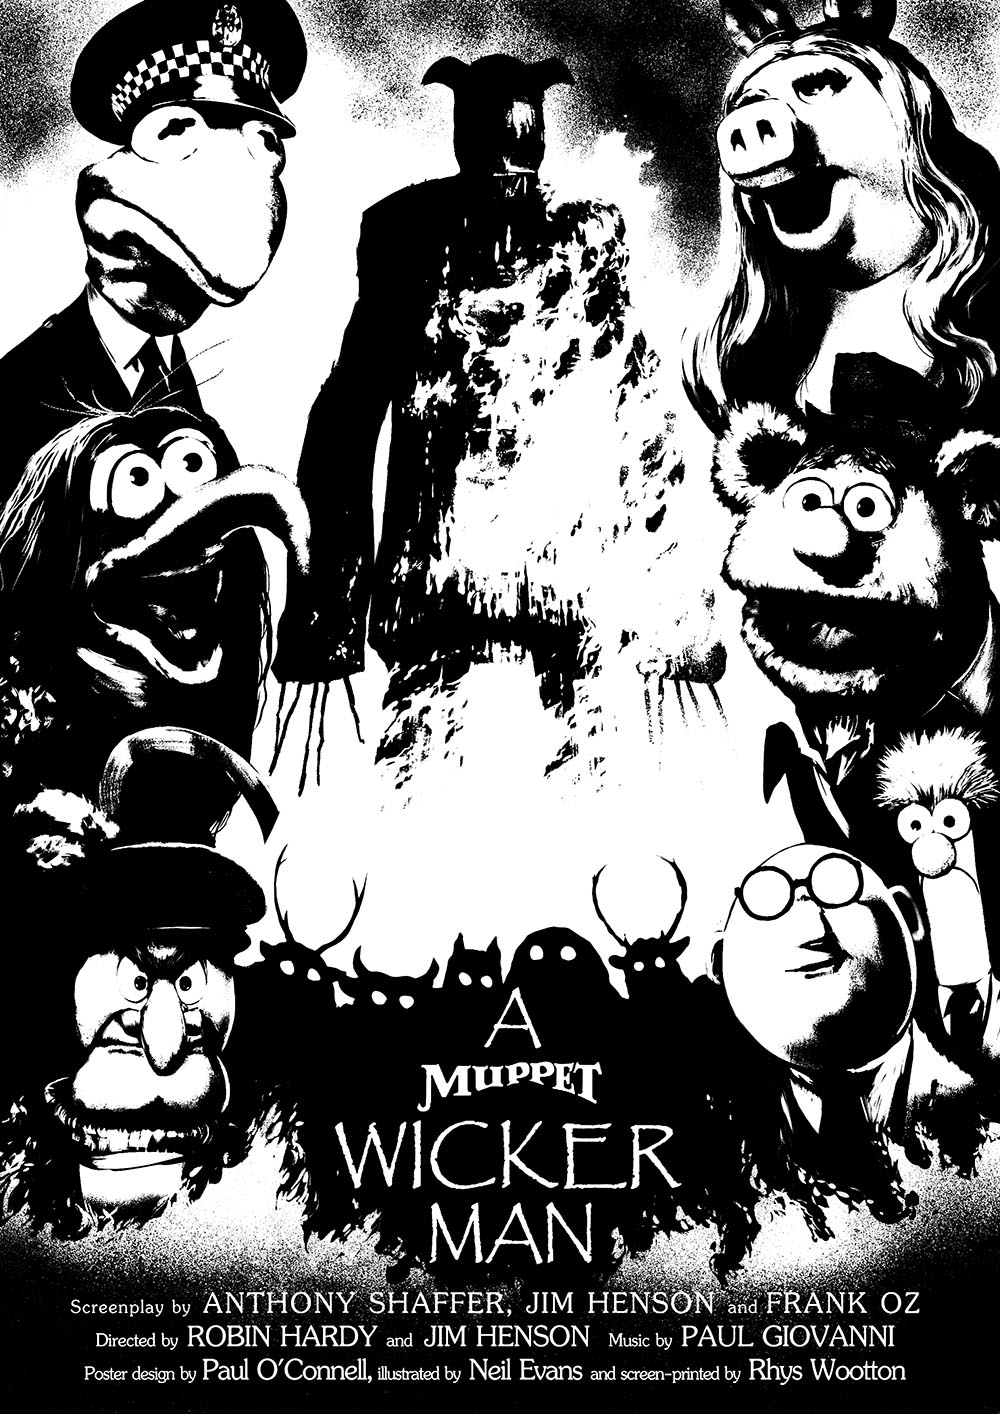 muppet-wicker-man-print.jpg